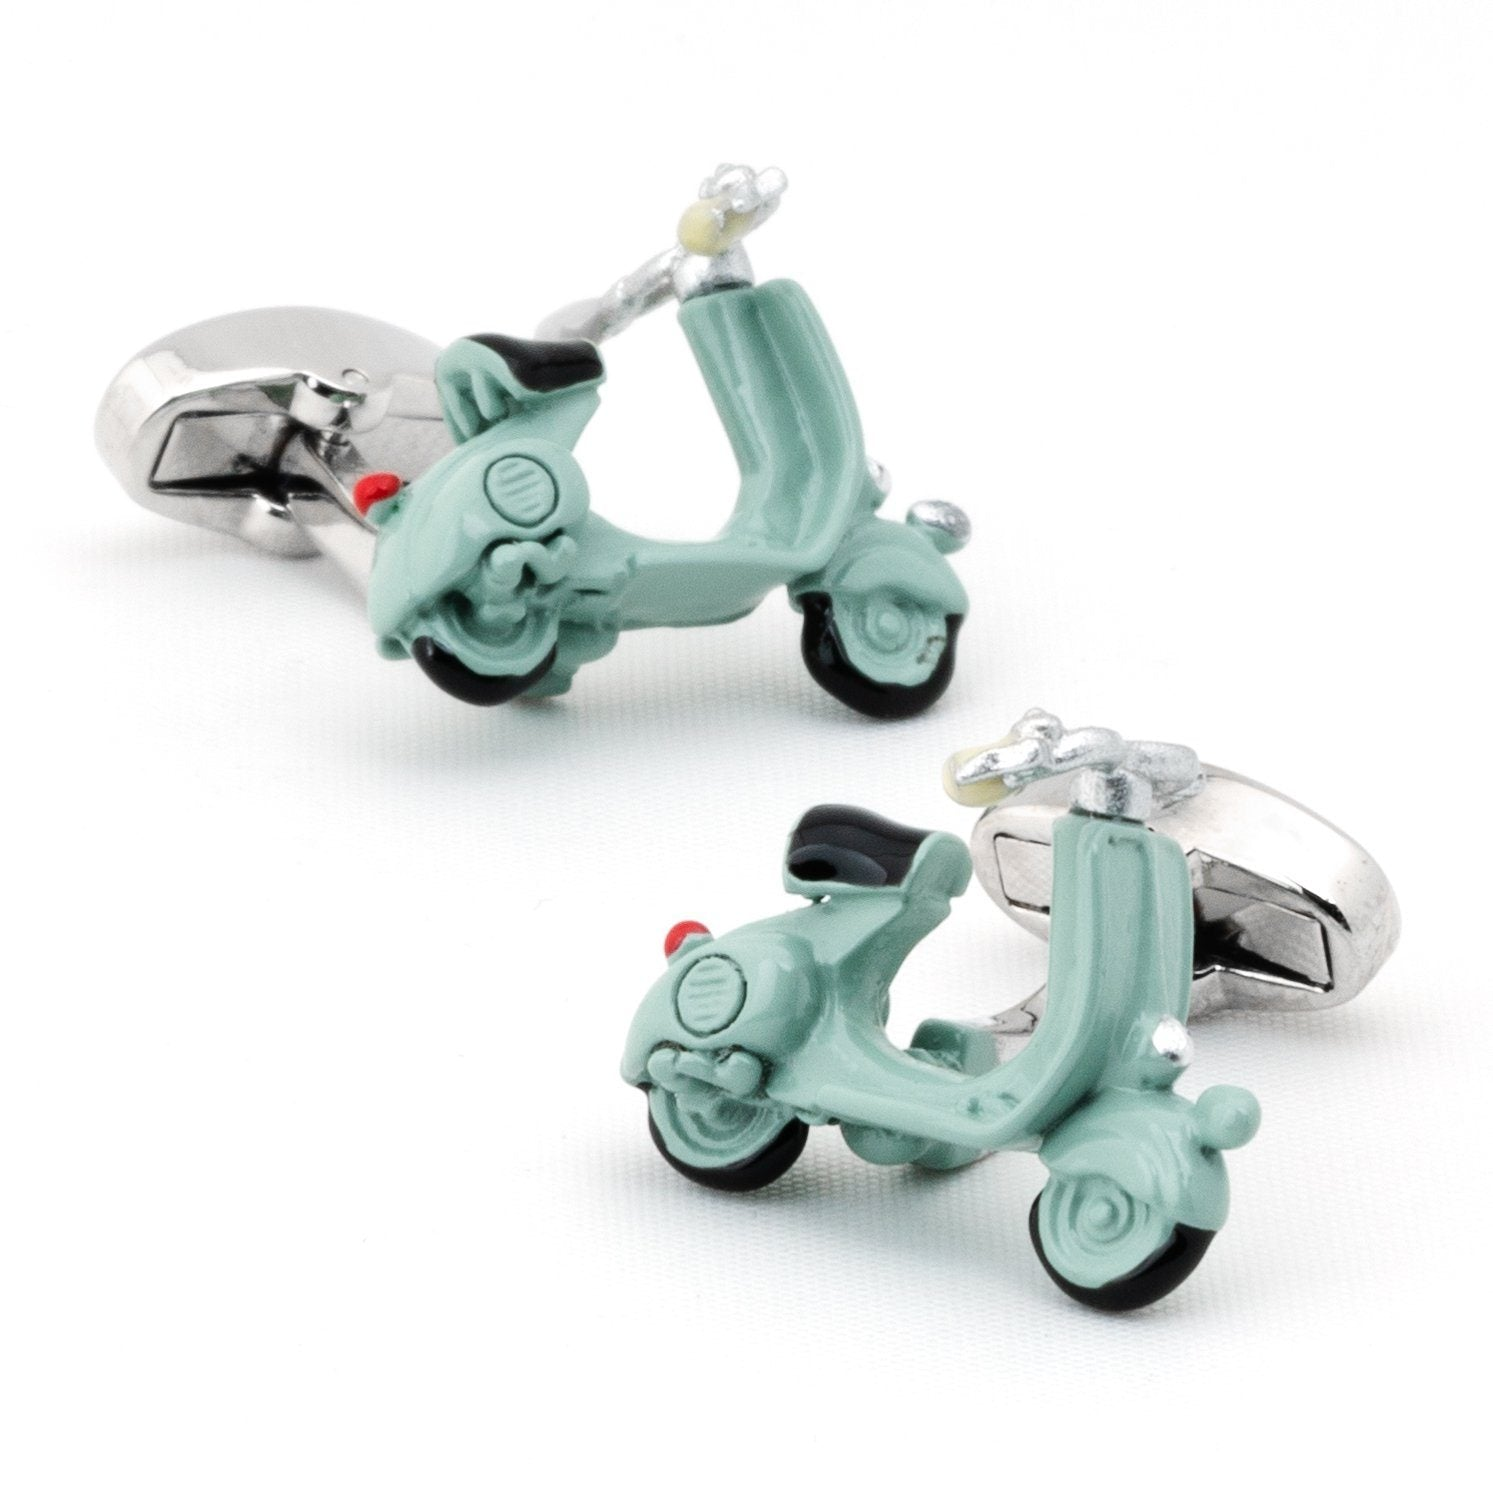 Light Blue 3D Vespa Scooter Cufflinks Novelty Cufflinks Clinks Australia